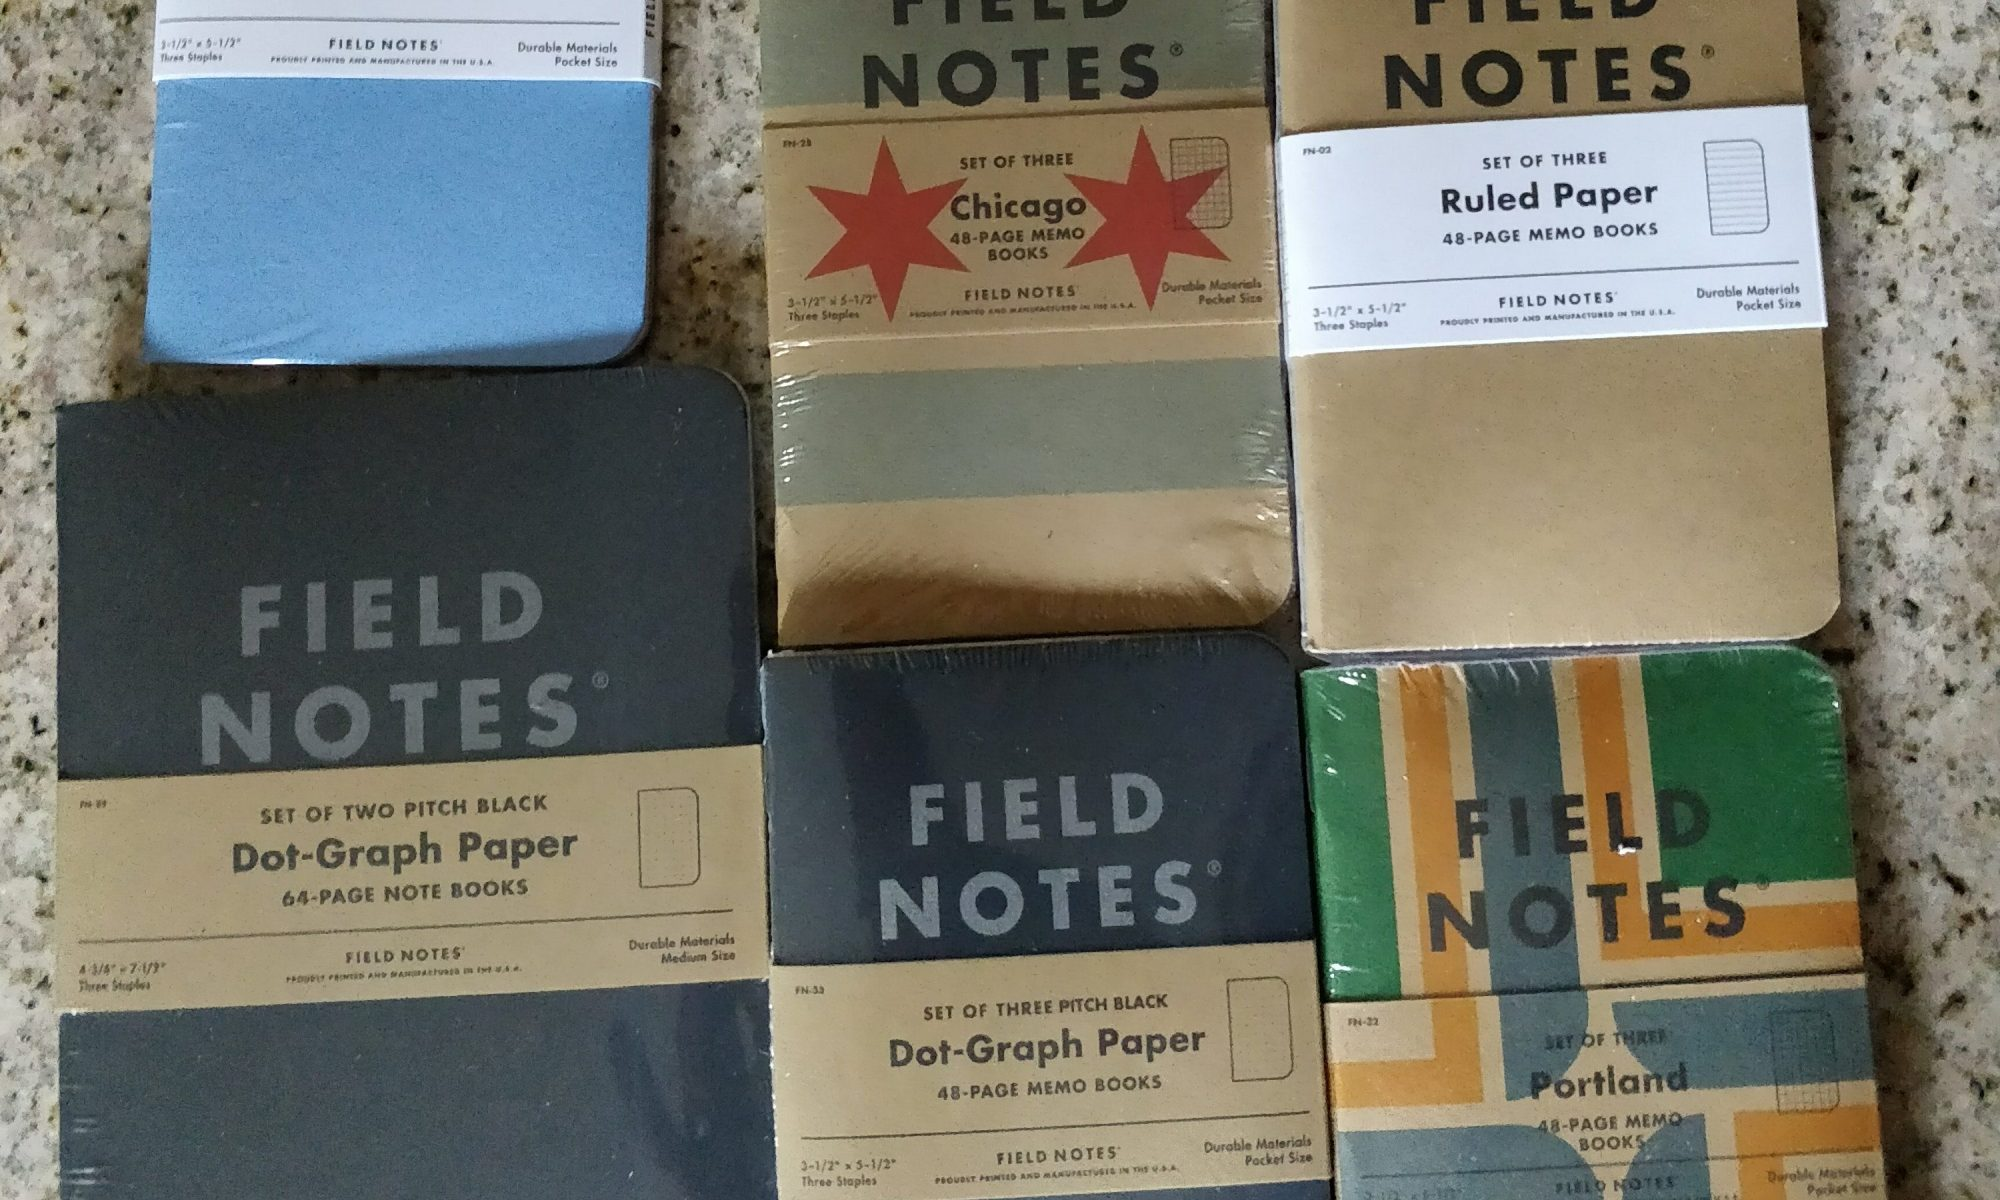 Field Notes brand pocket notebooks